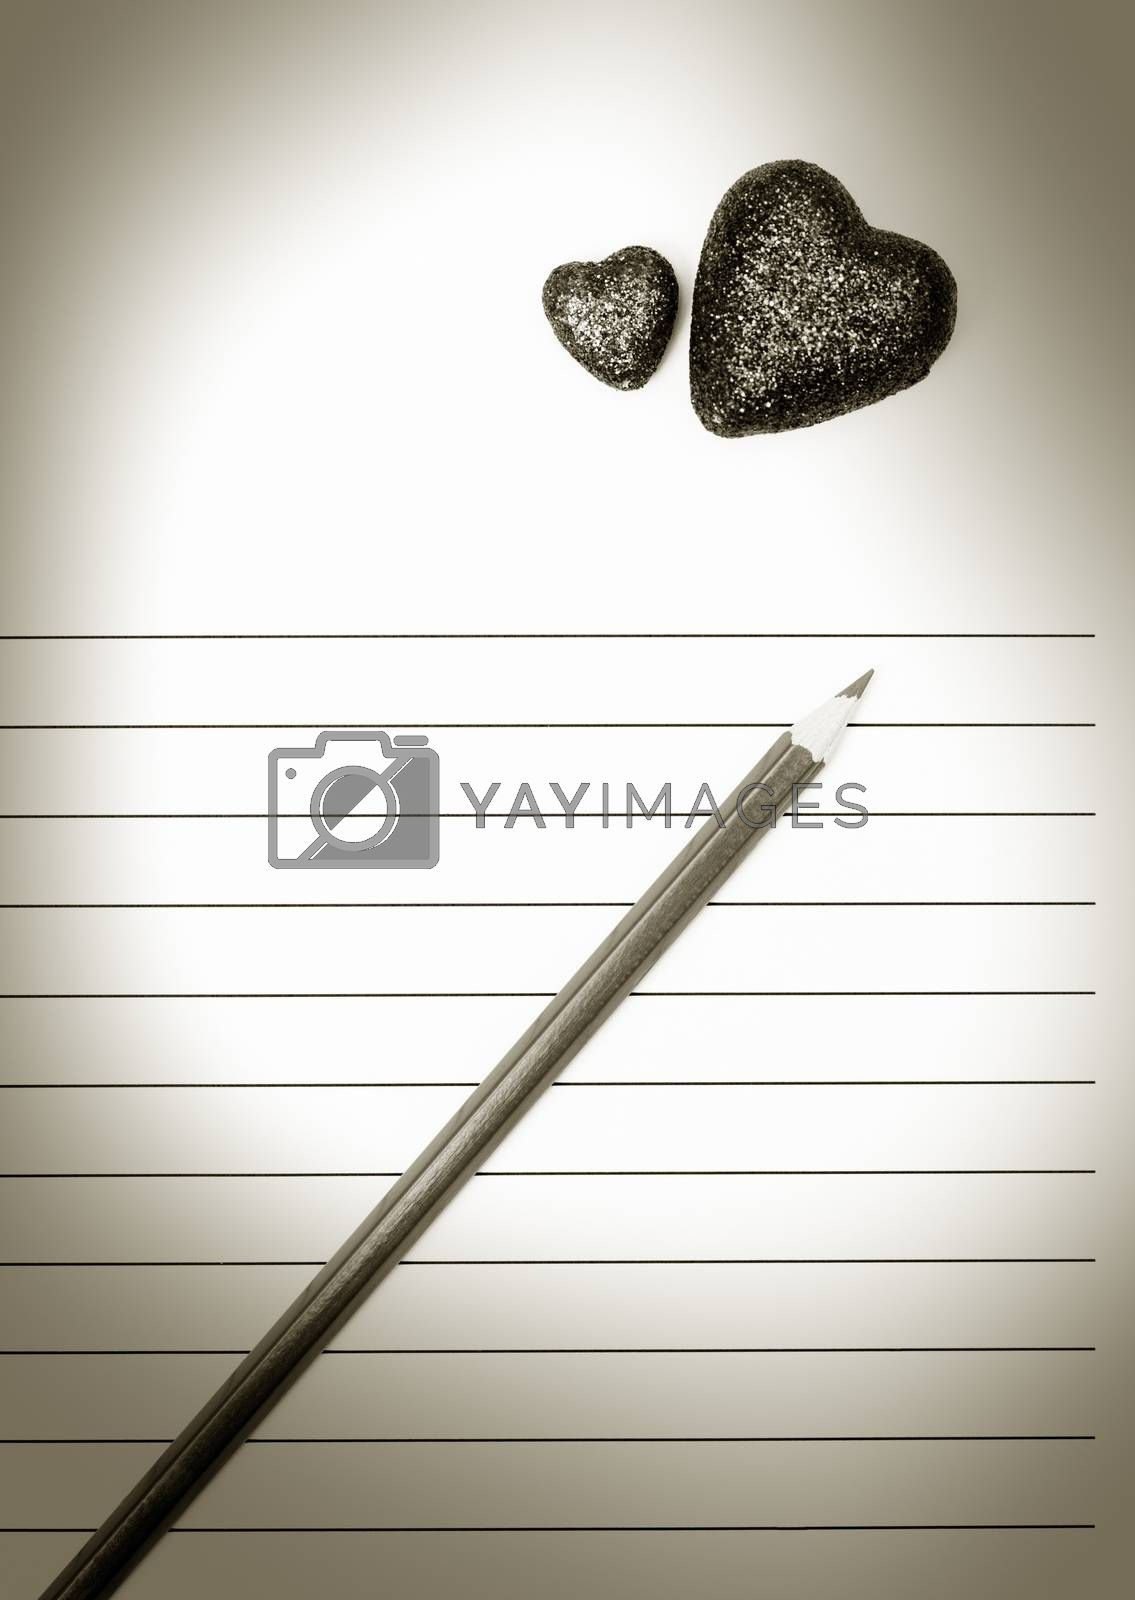 Pencil and two hearts on a blank love letter. Sepia colors added